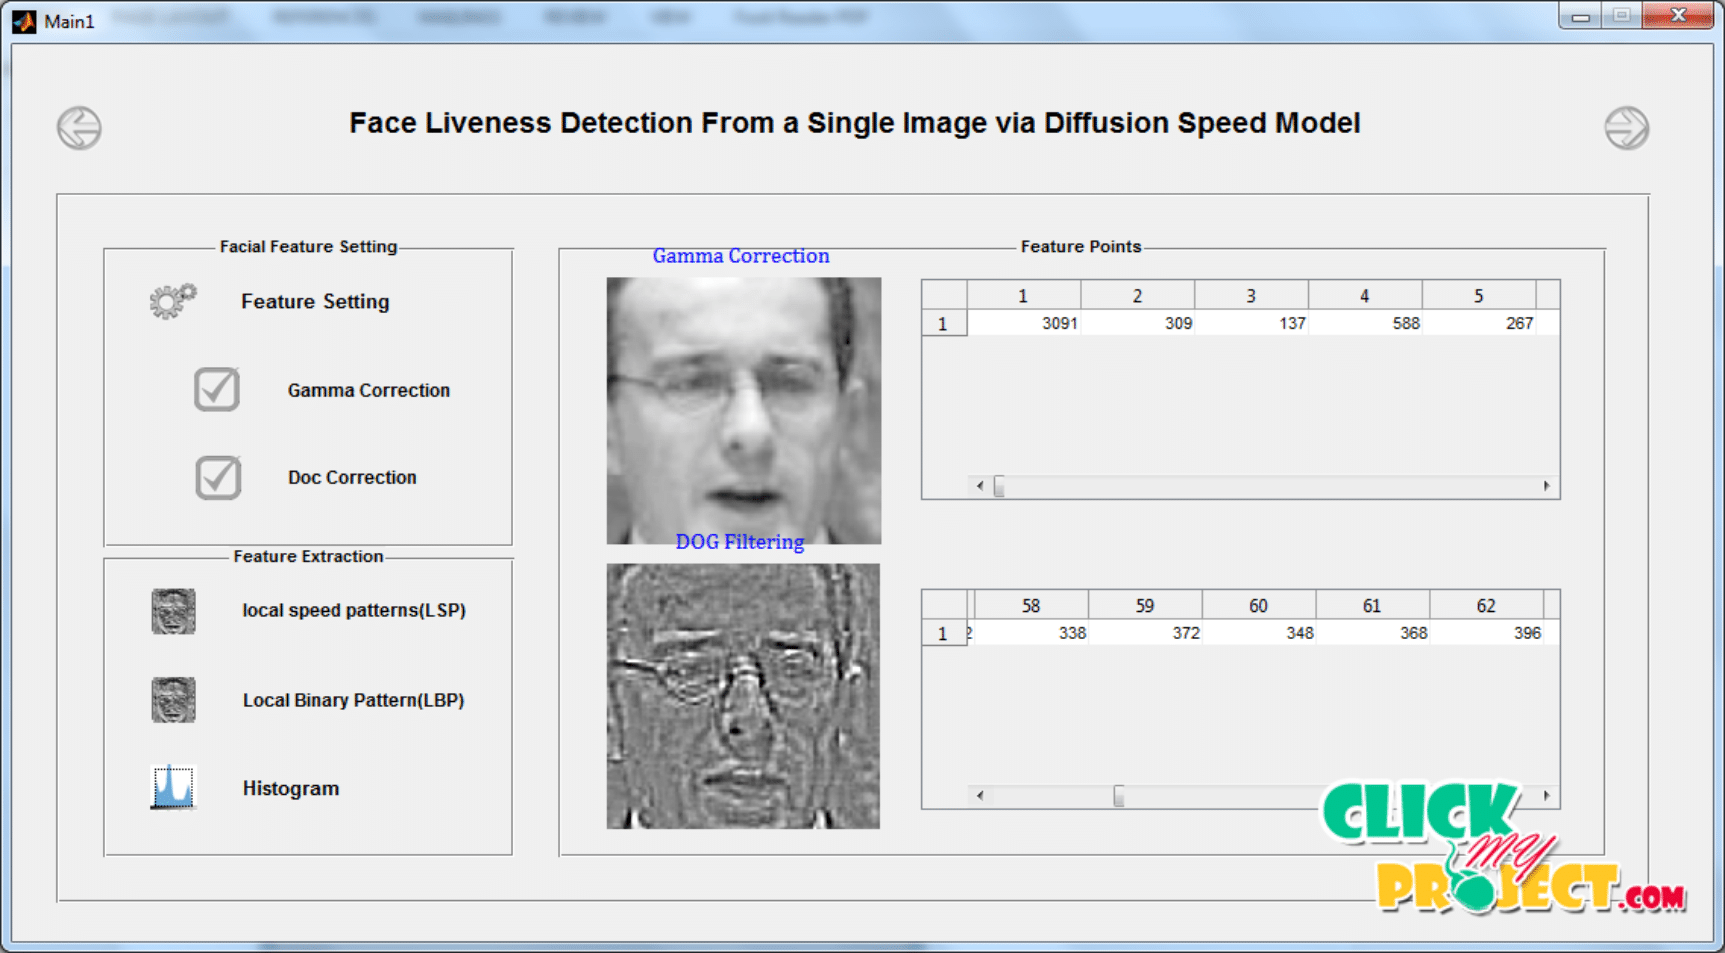 A New Human Identification Method: Sclera Recognition Algorithim 2